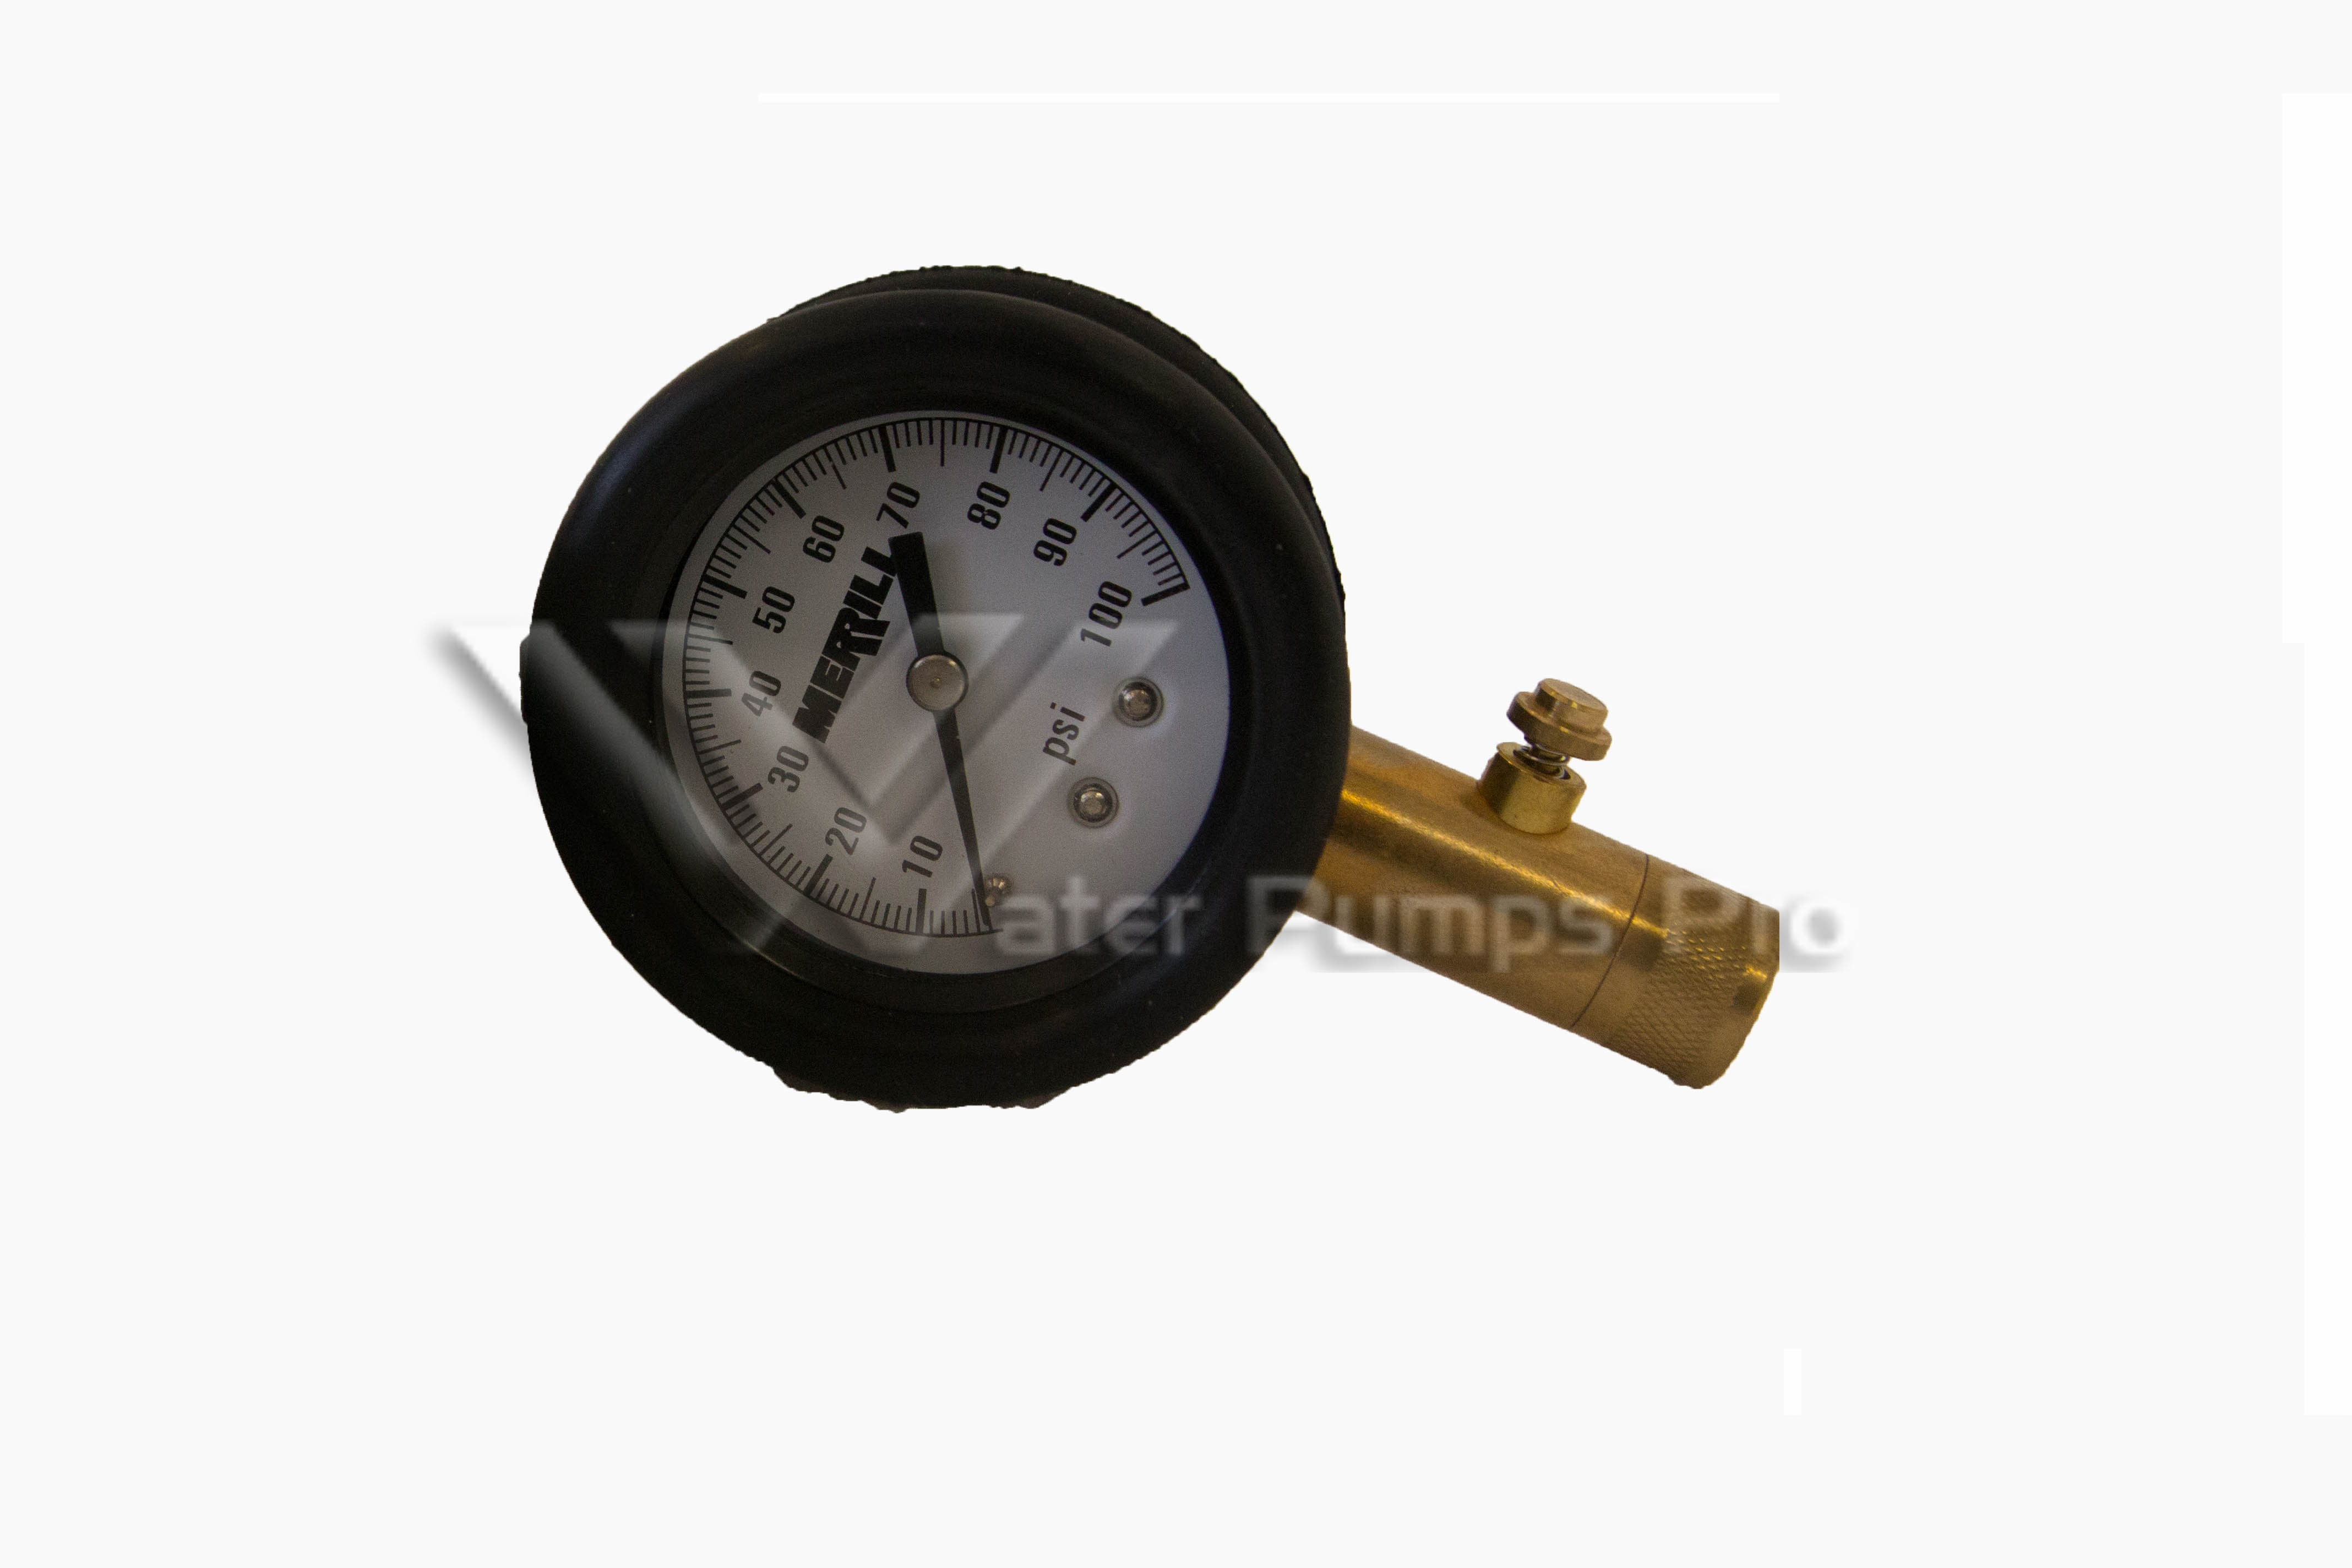 Merrill PGAT100 Air Test Gauge 0-100 psi